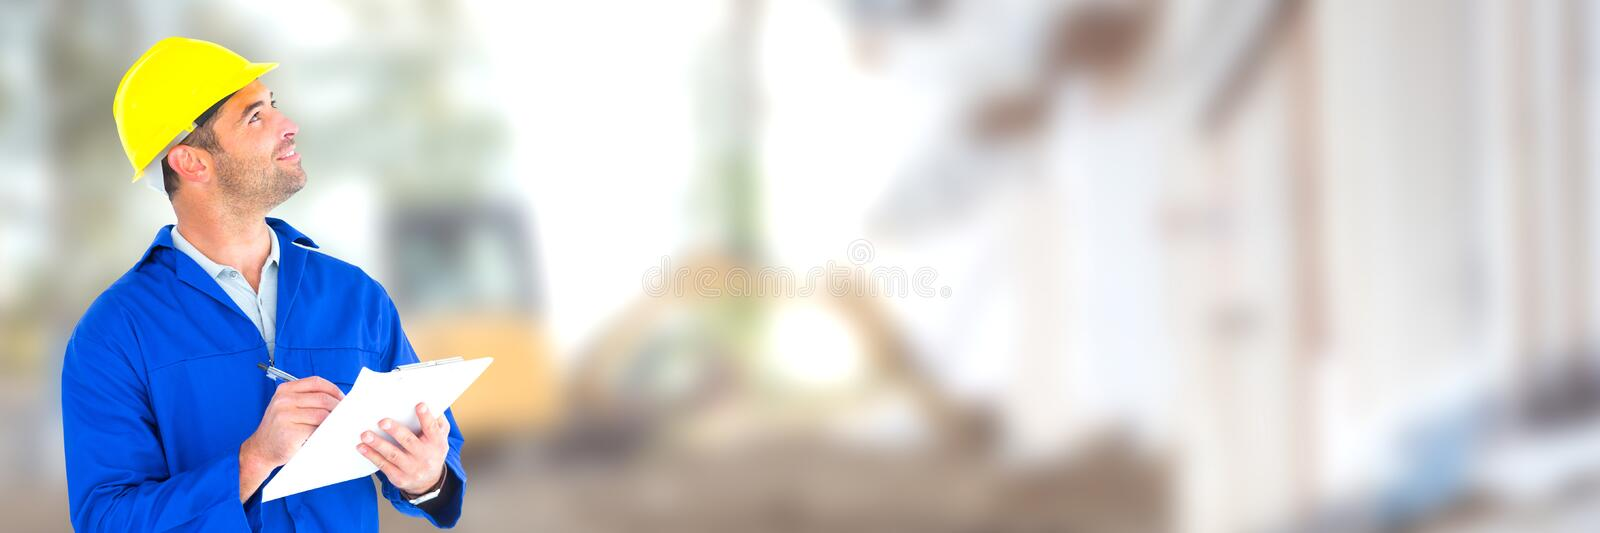 Construction Worker on building site with chart plans royalty free stock photos